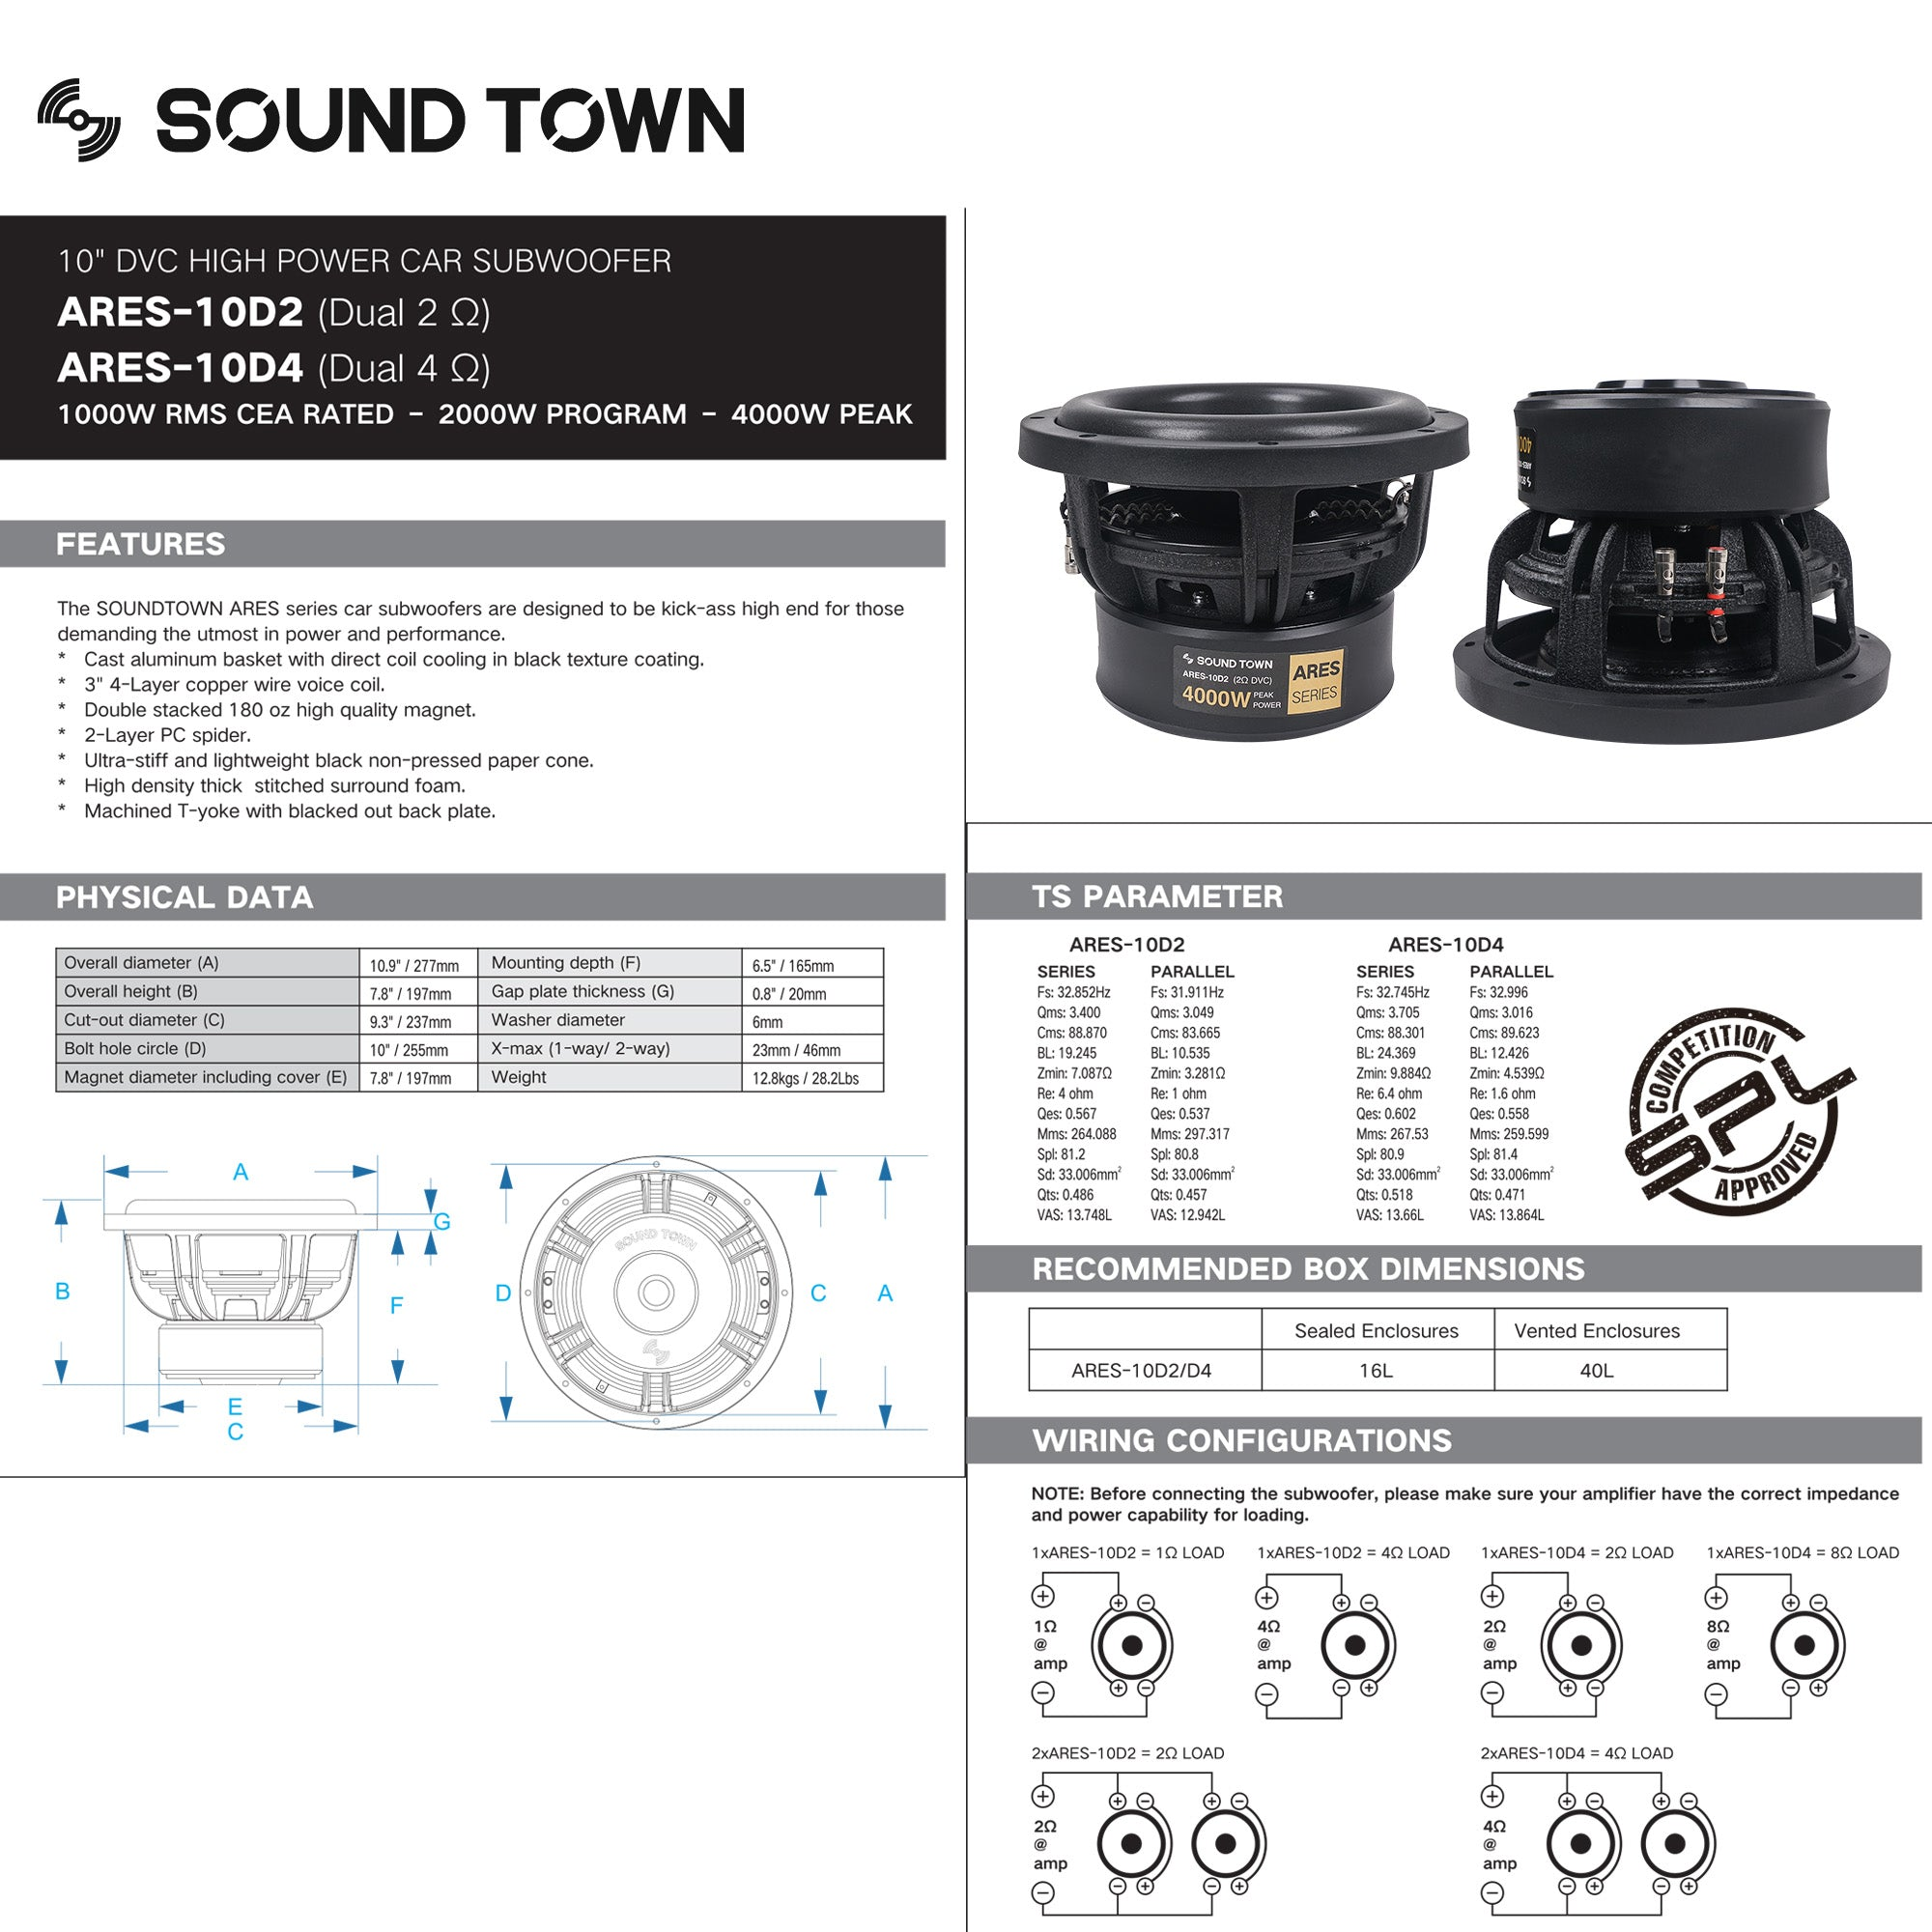 """Sound Town ARES-10D4 10"""" Dual Voice Coil 1000W Car Audio Subwoofer, Dual 4-Ohm, CEA Rated - technical specifications"""